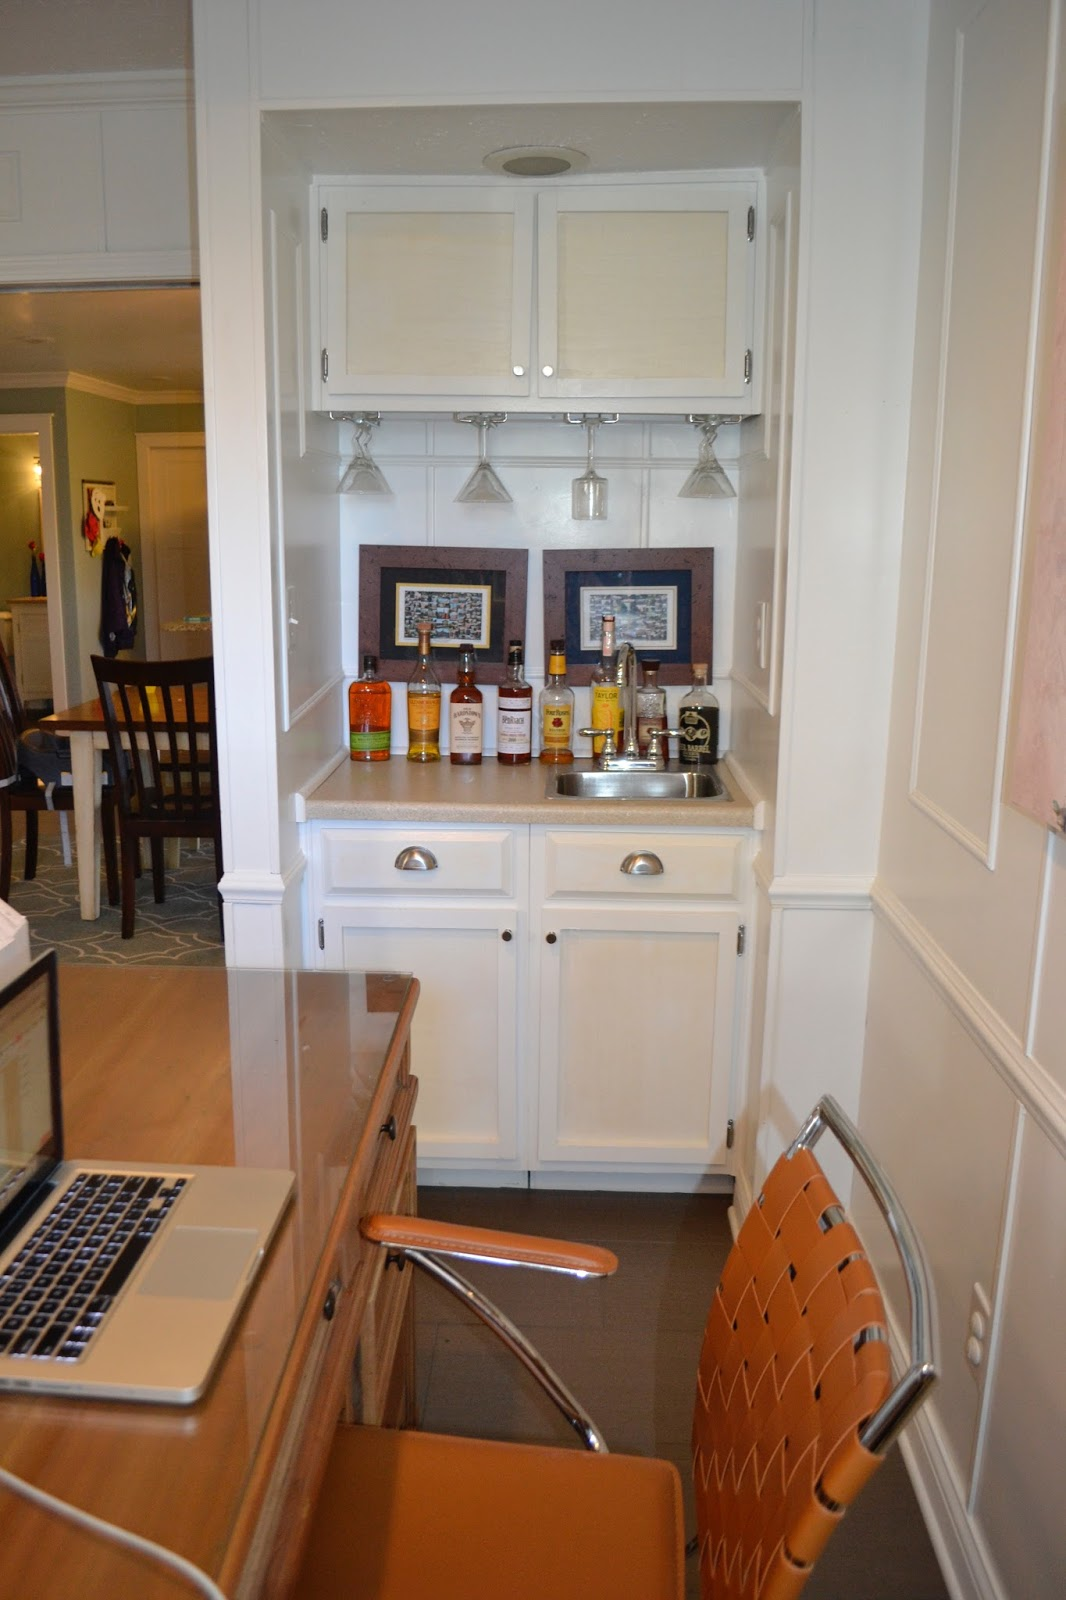 office wet bar. Built-in Wet Bar For The Fictitious \u0027smoking Room\u0027. When Building Your Own Cabinet Doors, Remind Self To Properly Prime And Layer Paint Avoid Yellowing. Office